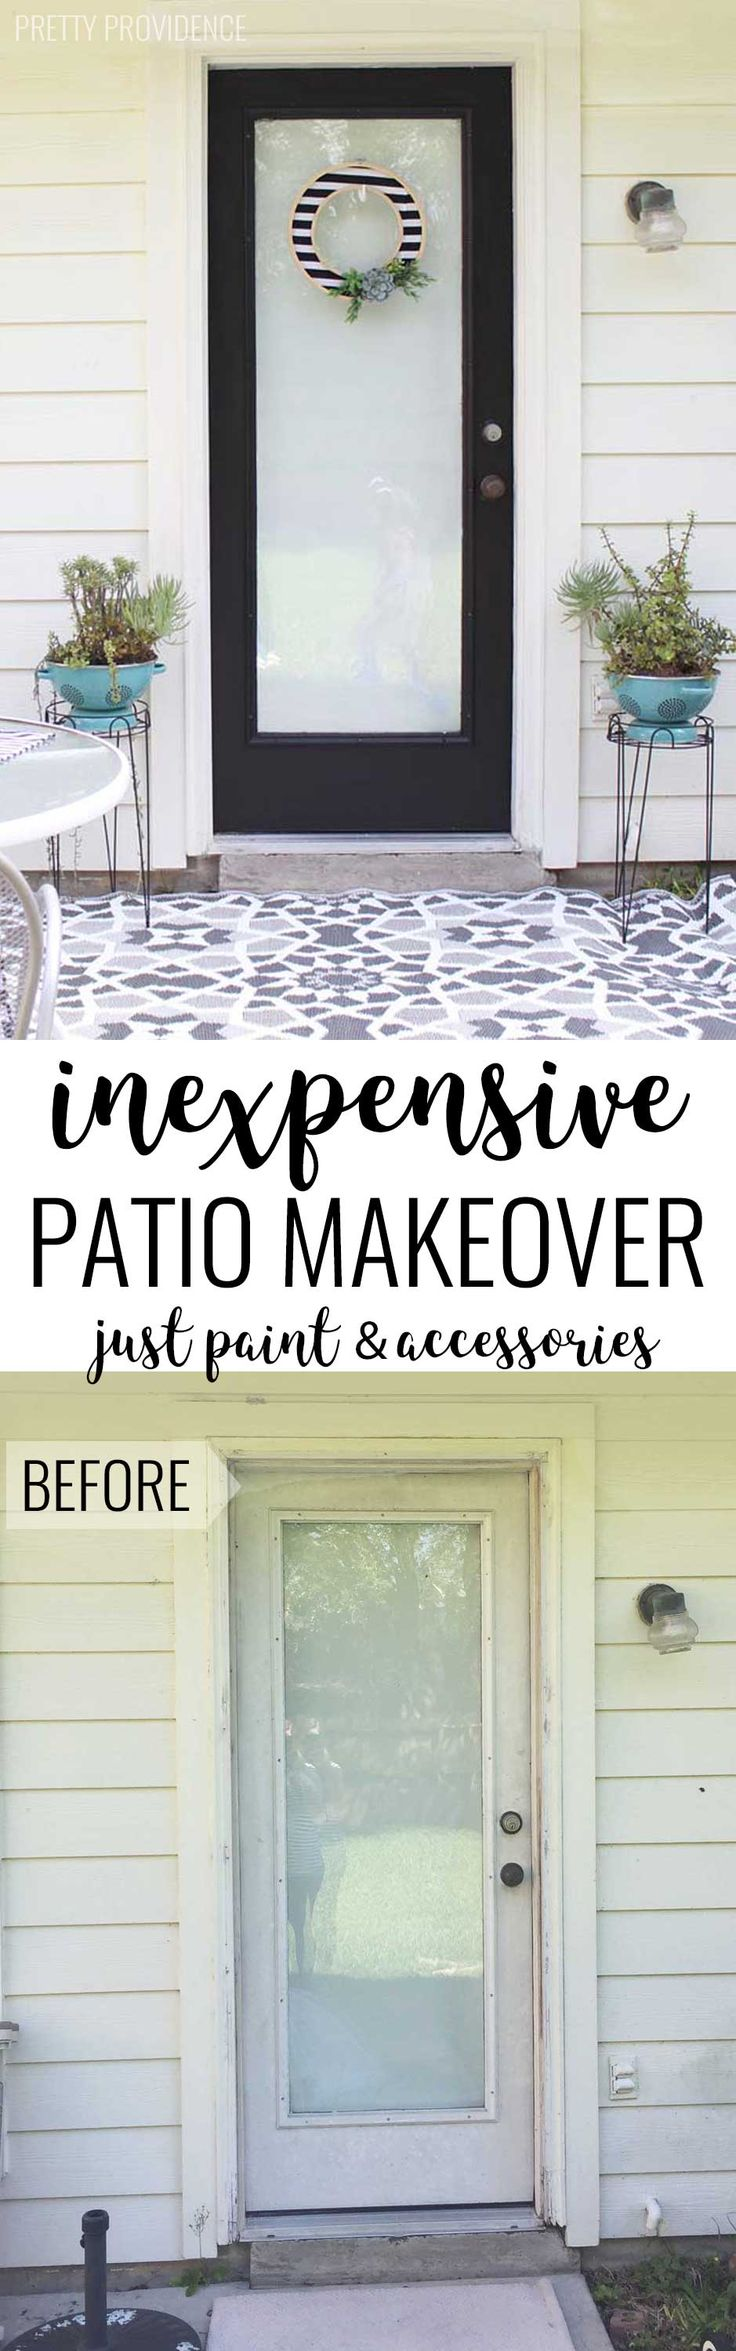 The power of PAINT! This door and patio area looks incredible and the transforma...